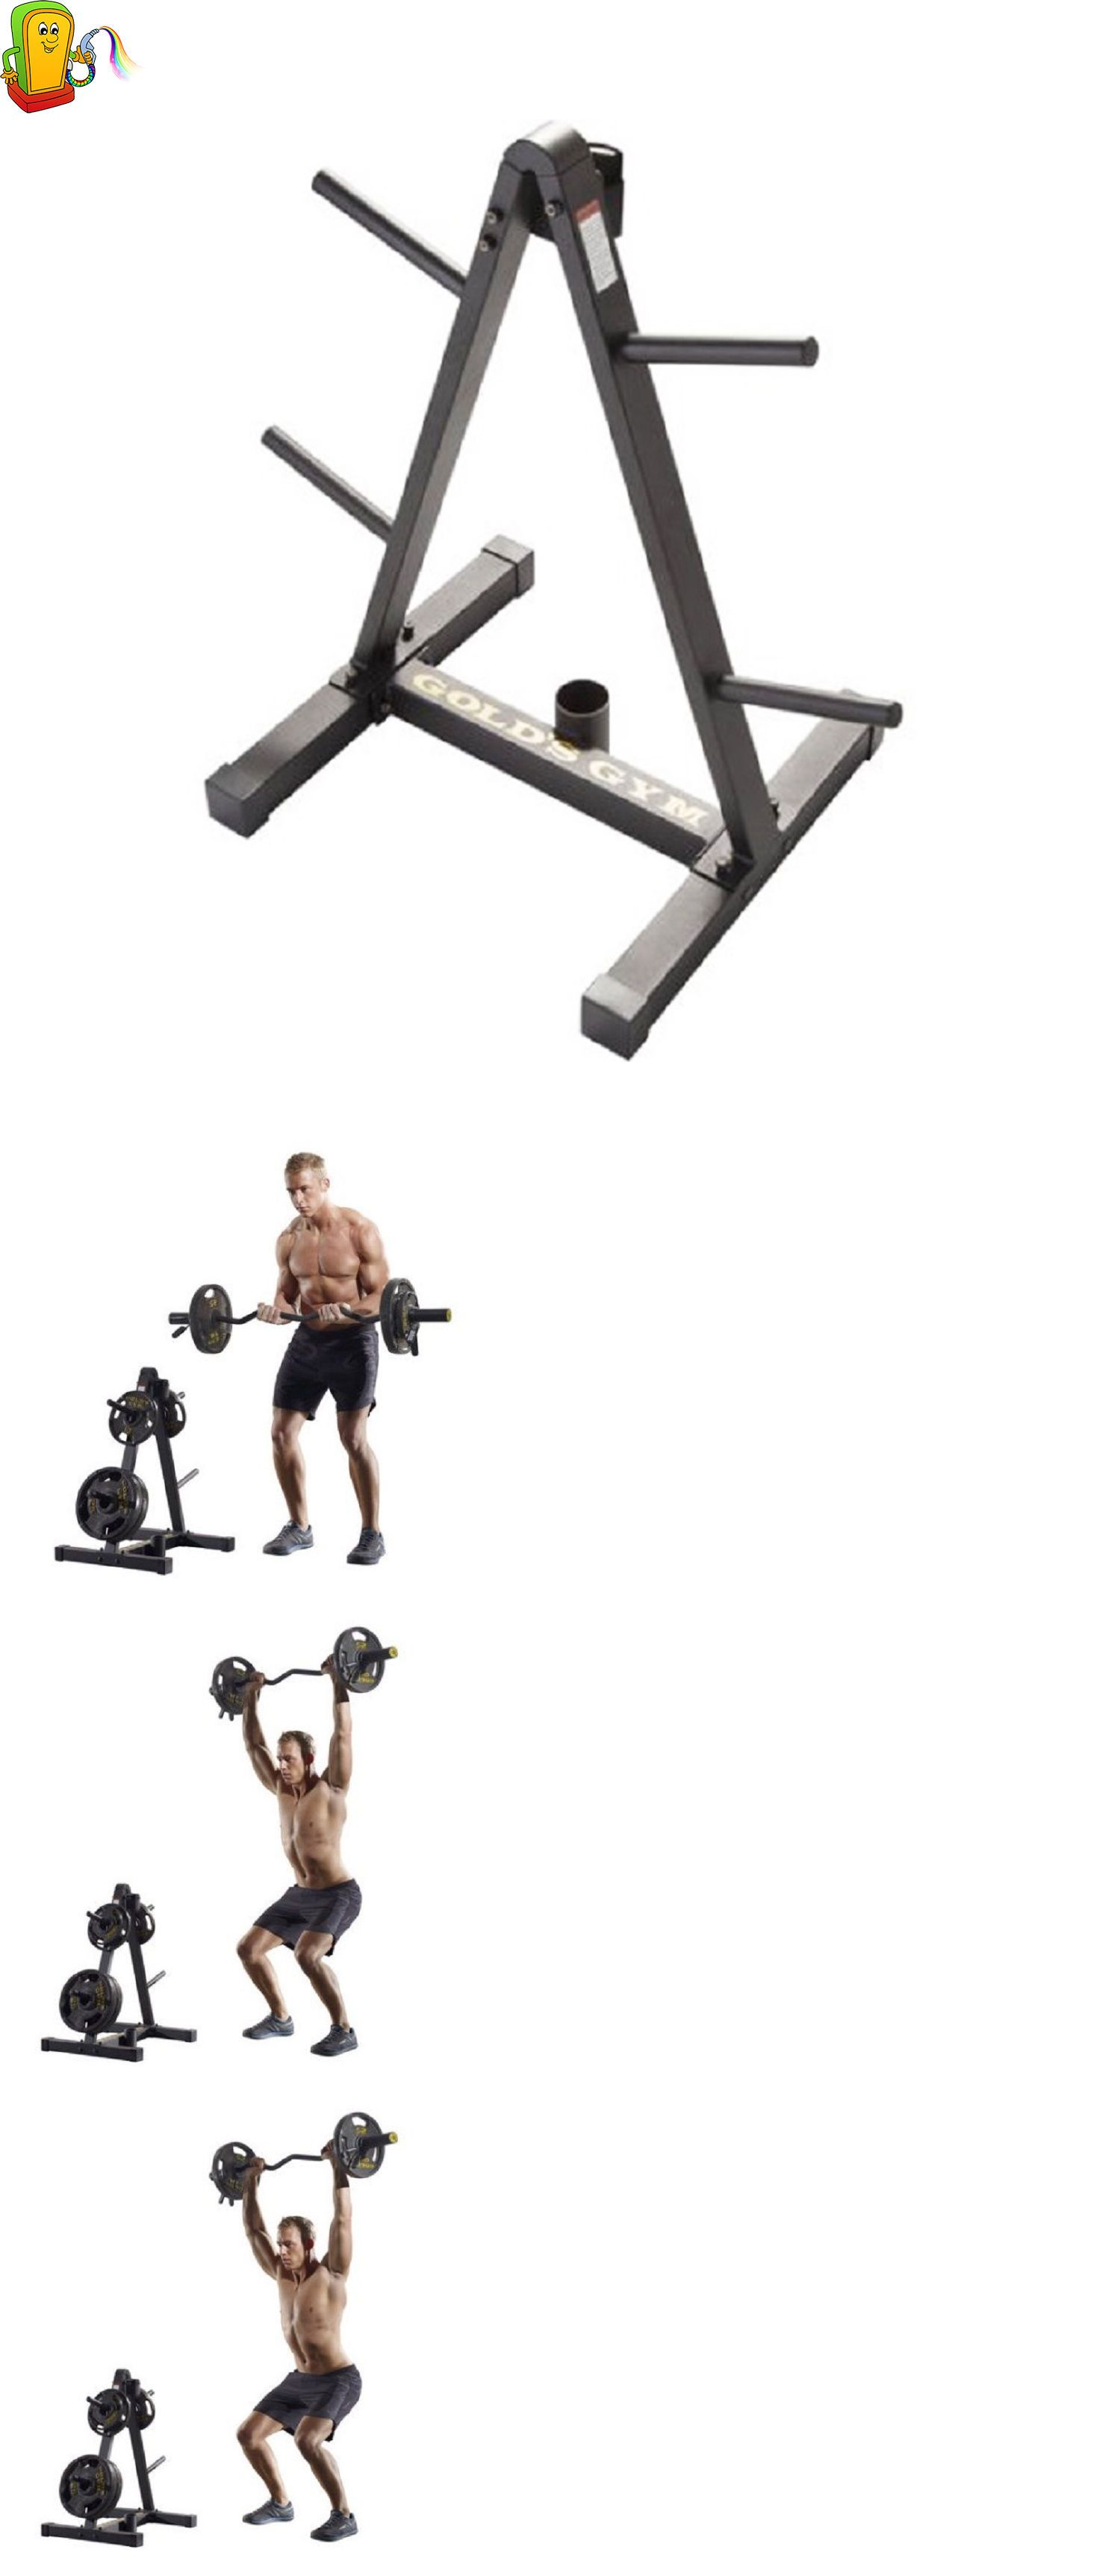 rack mounted deep creative short titan t power itm is dips squats limited folding for shupfpwr exercises ideal with fitness barbell bench back wall start and anyone space pressing storage other the doing fold series